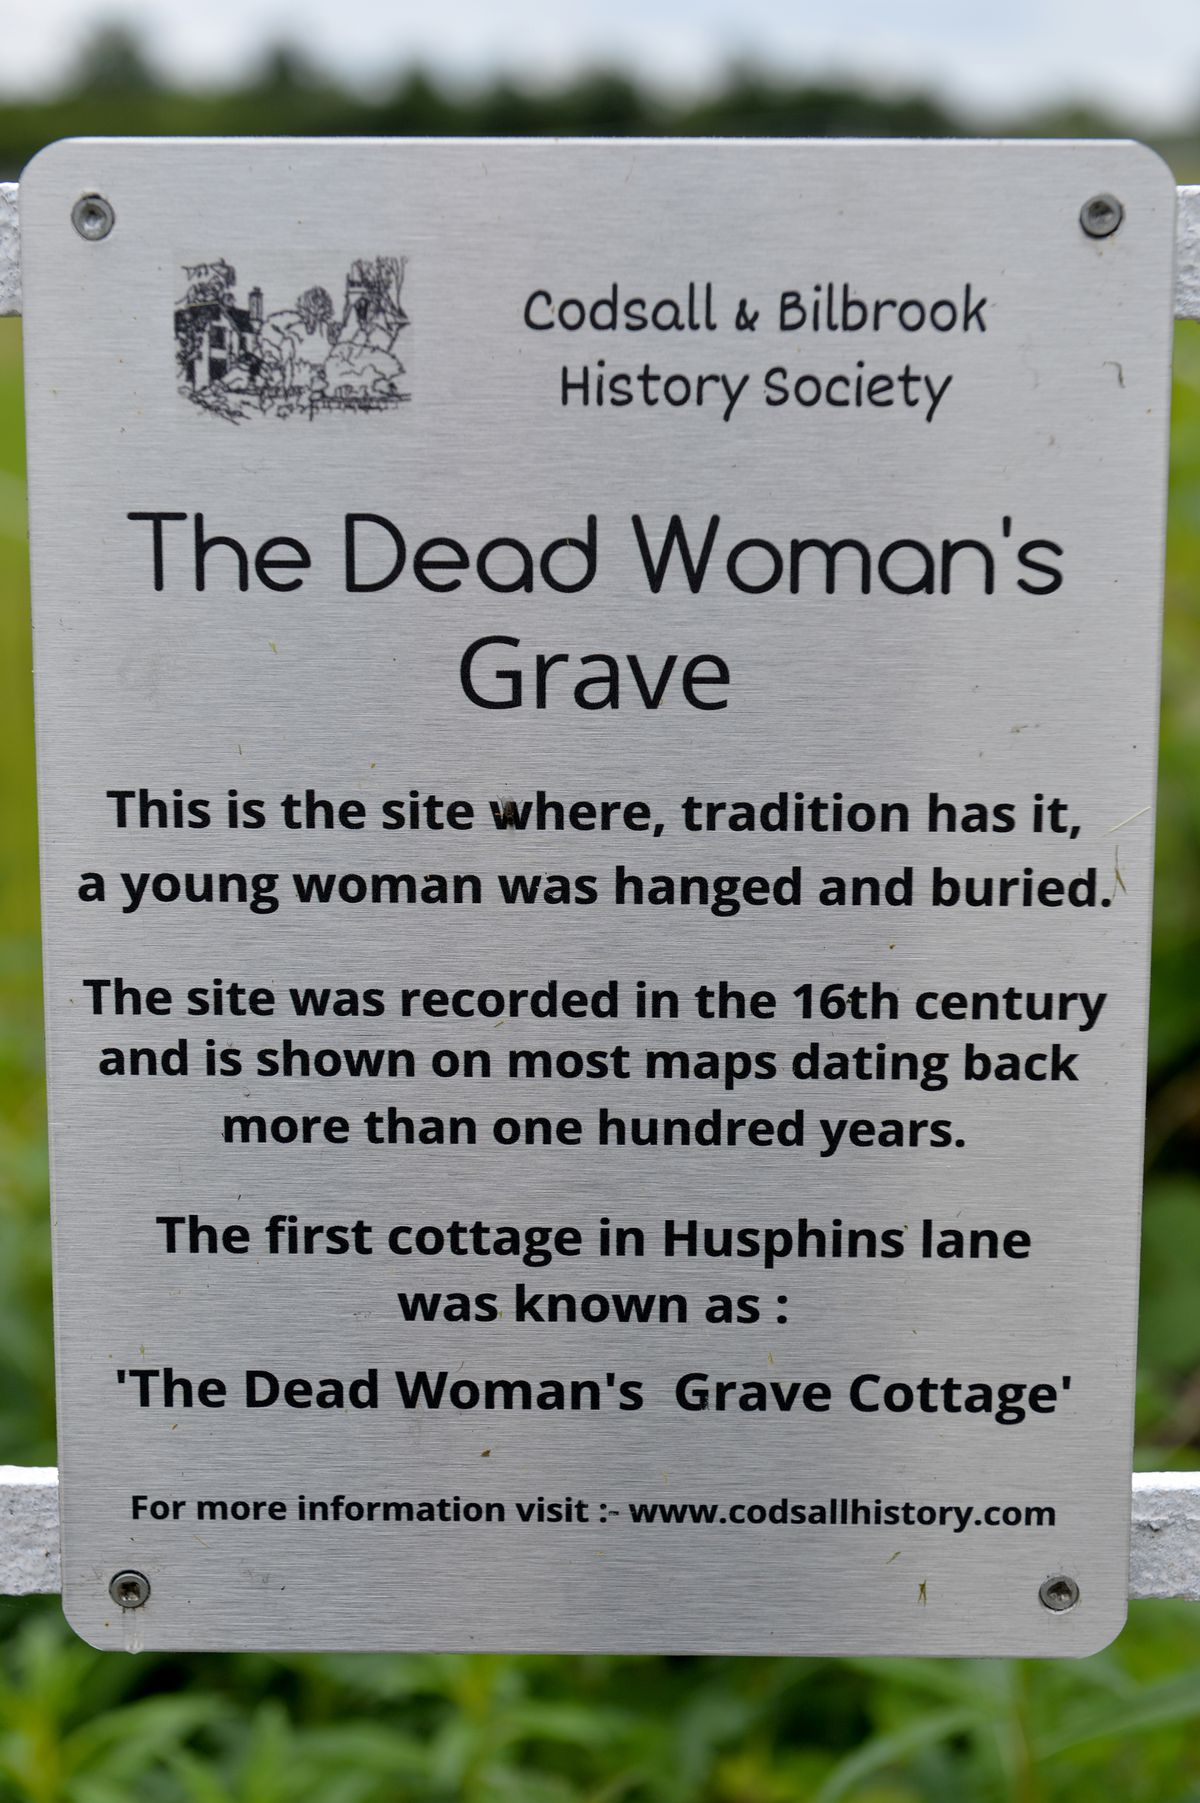 The sign put up by the local history society